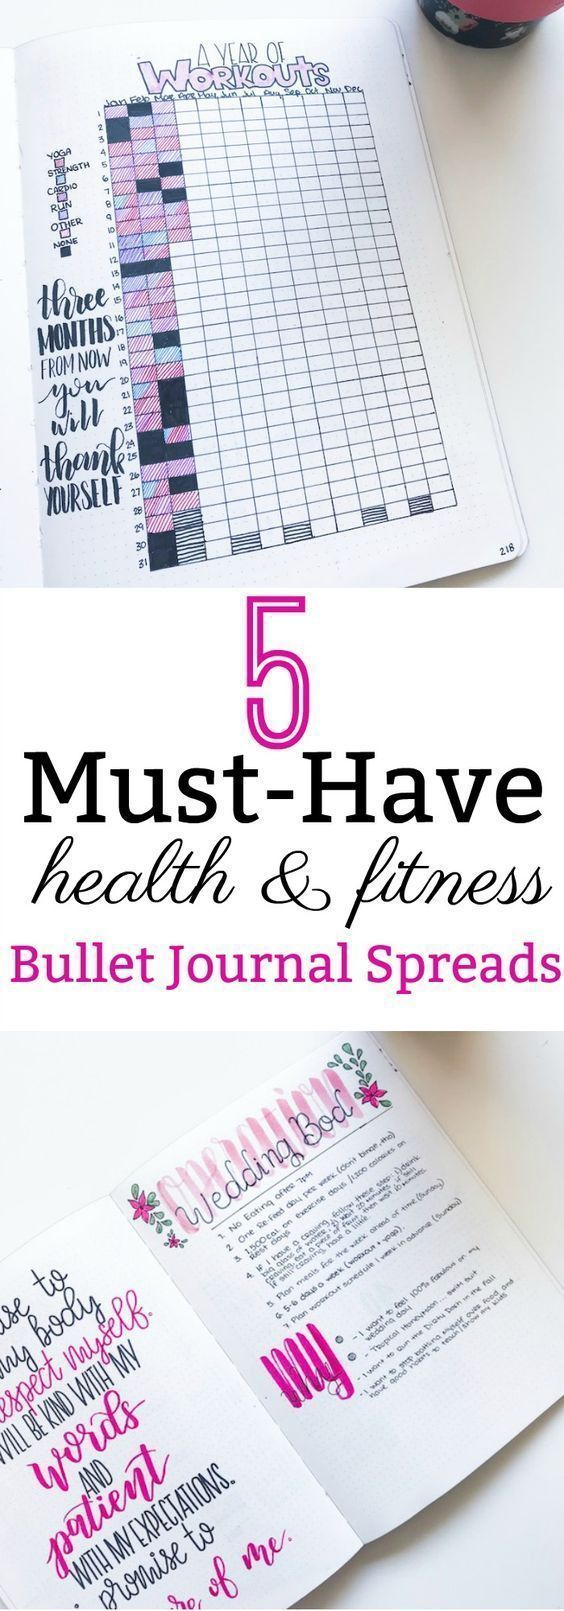 #musthave #fitness #journal #spreads #health #bullet #trying #weight #youre #lose #and #if #to5 Must...